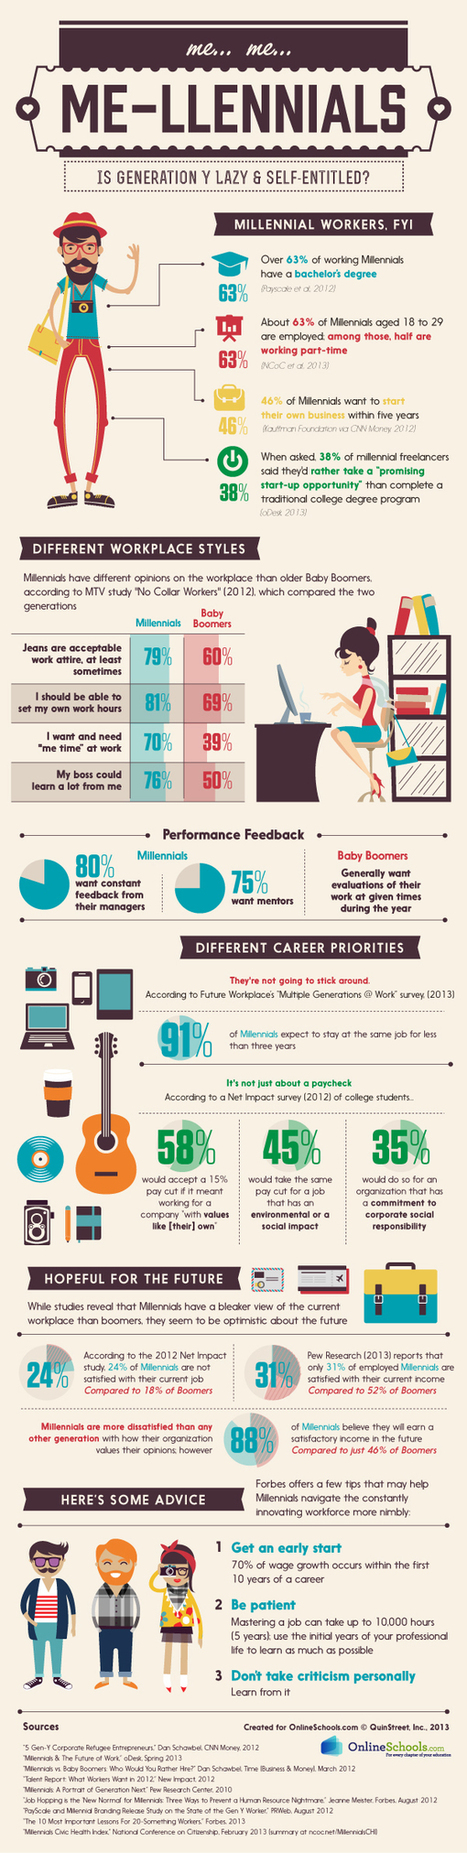 [infographic] Me-llenials: Is Generation Y lazy & self-entitled? | Les Digital Natives, mode d'emploi | Scoop.it